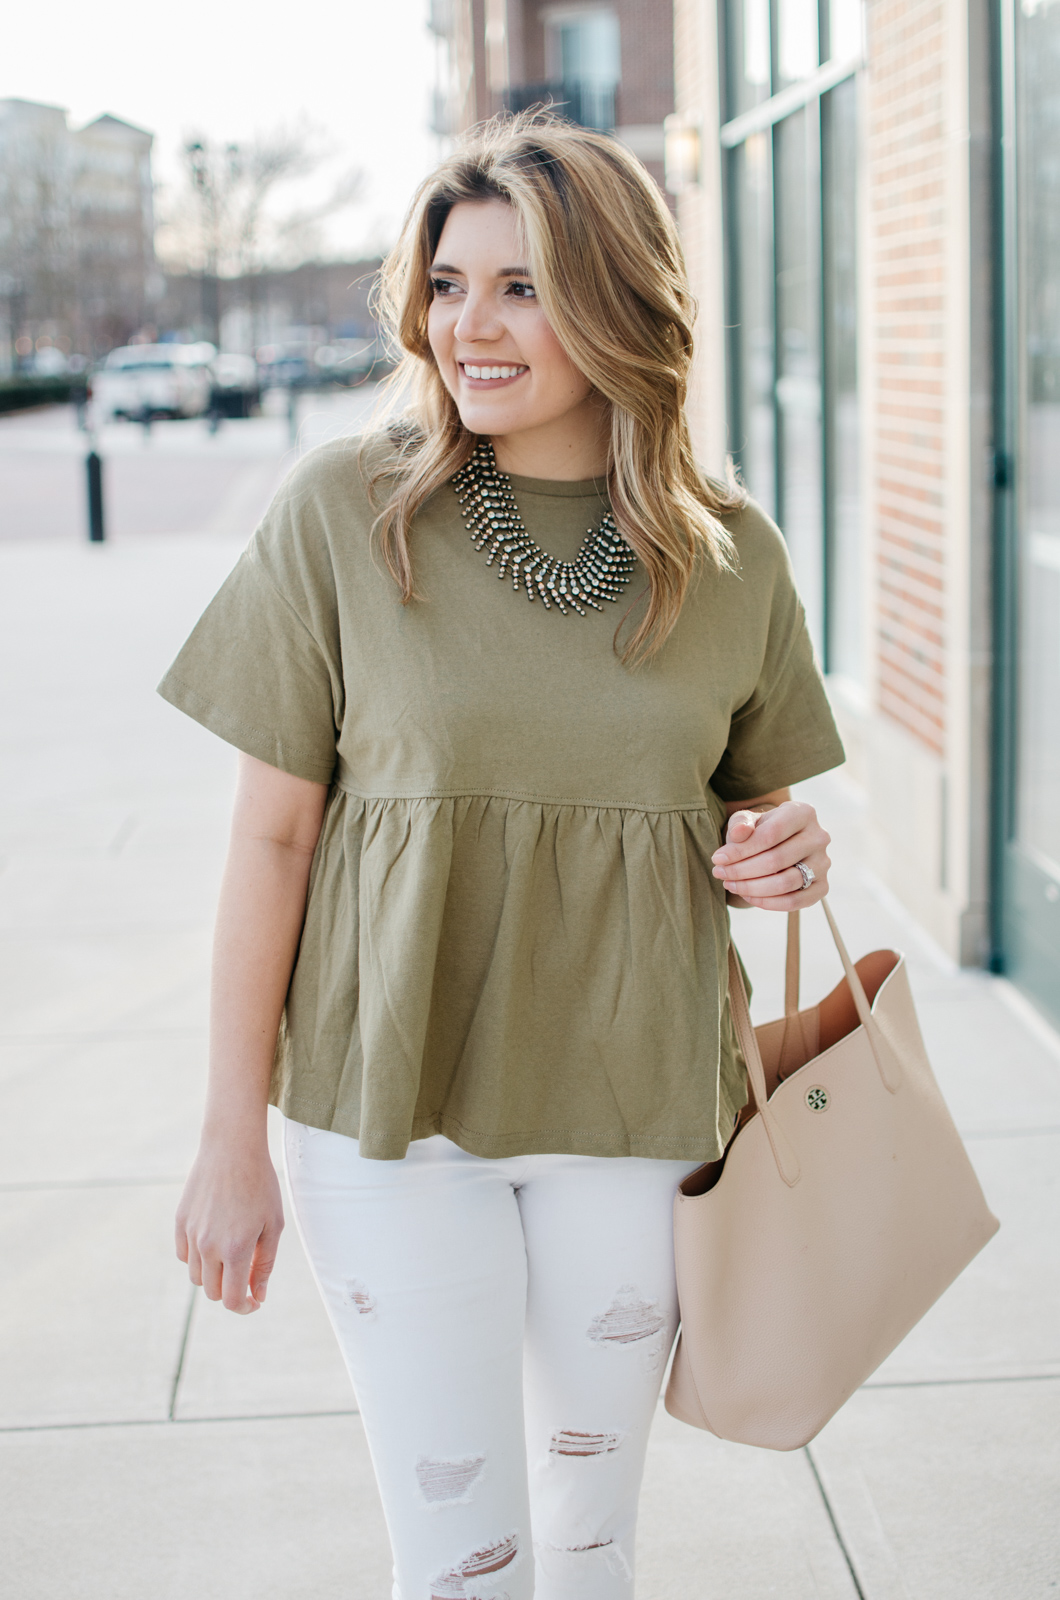 spring mom style - cute casual outfits for the weekend. Click through for more cute casual outfits or to shop this look! bylaurenm.com